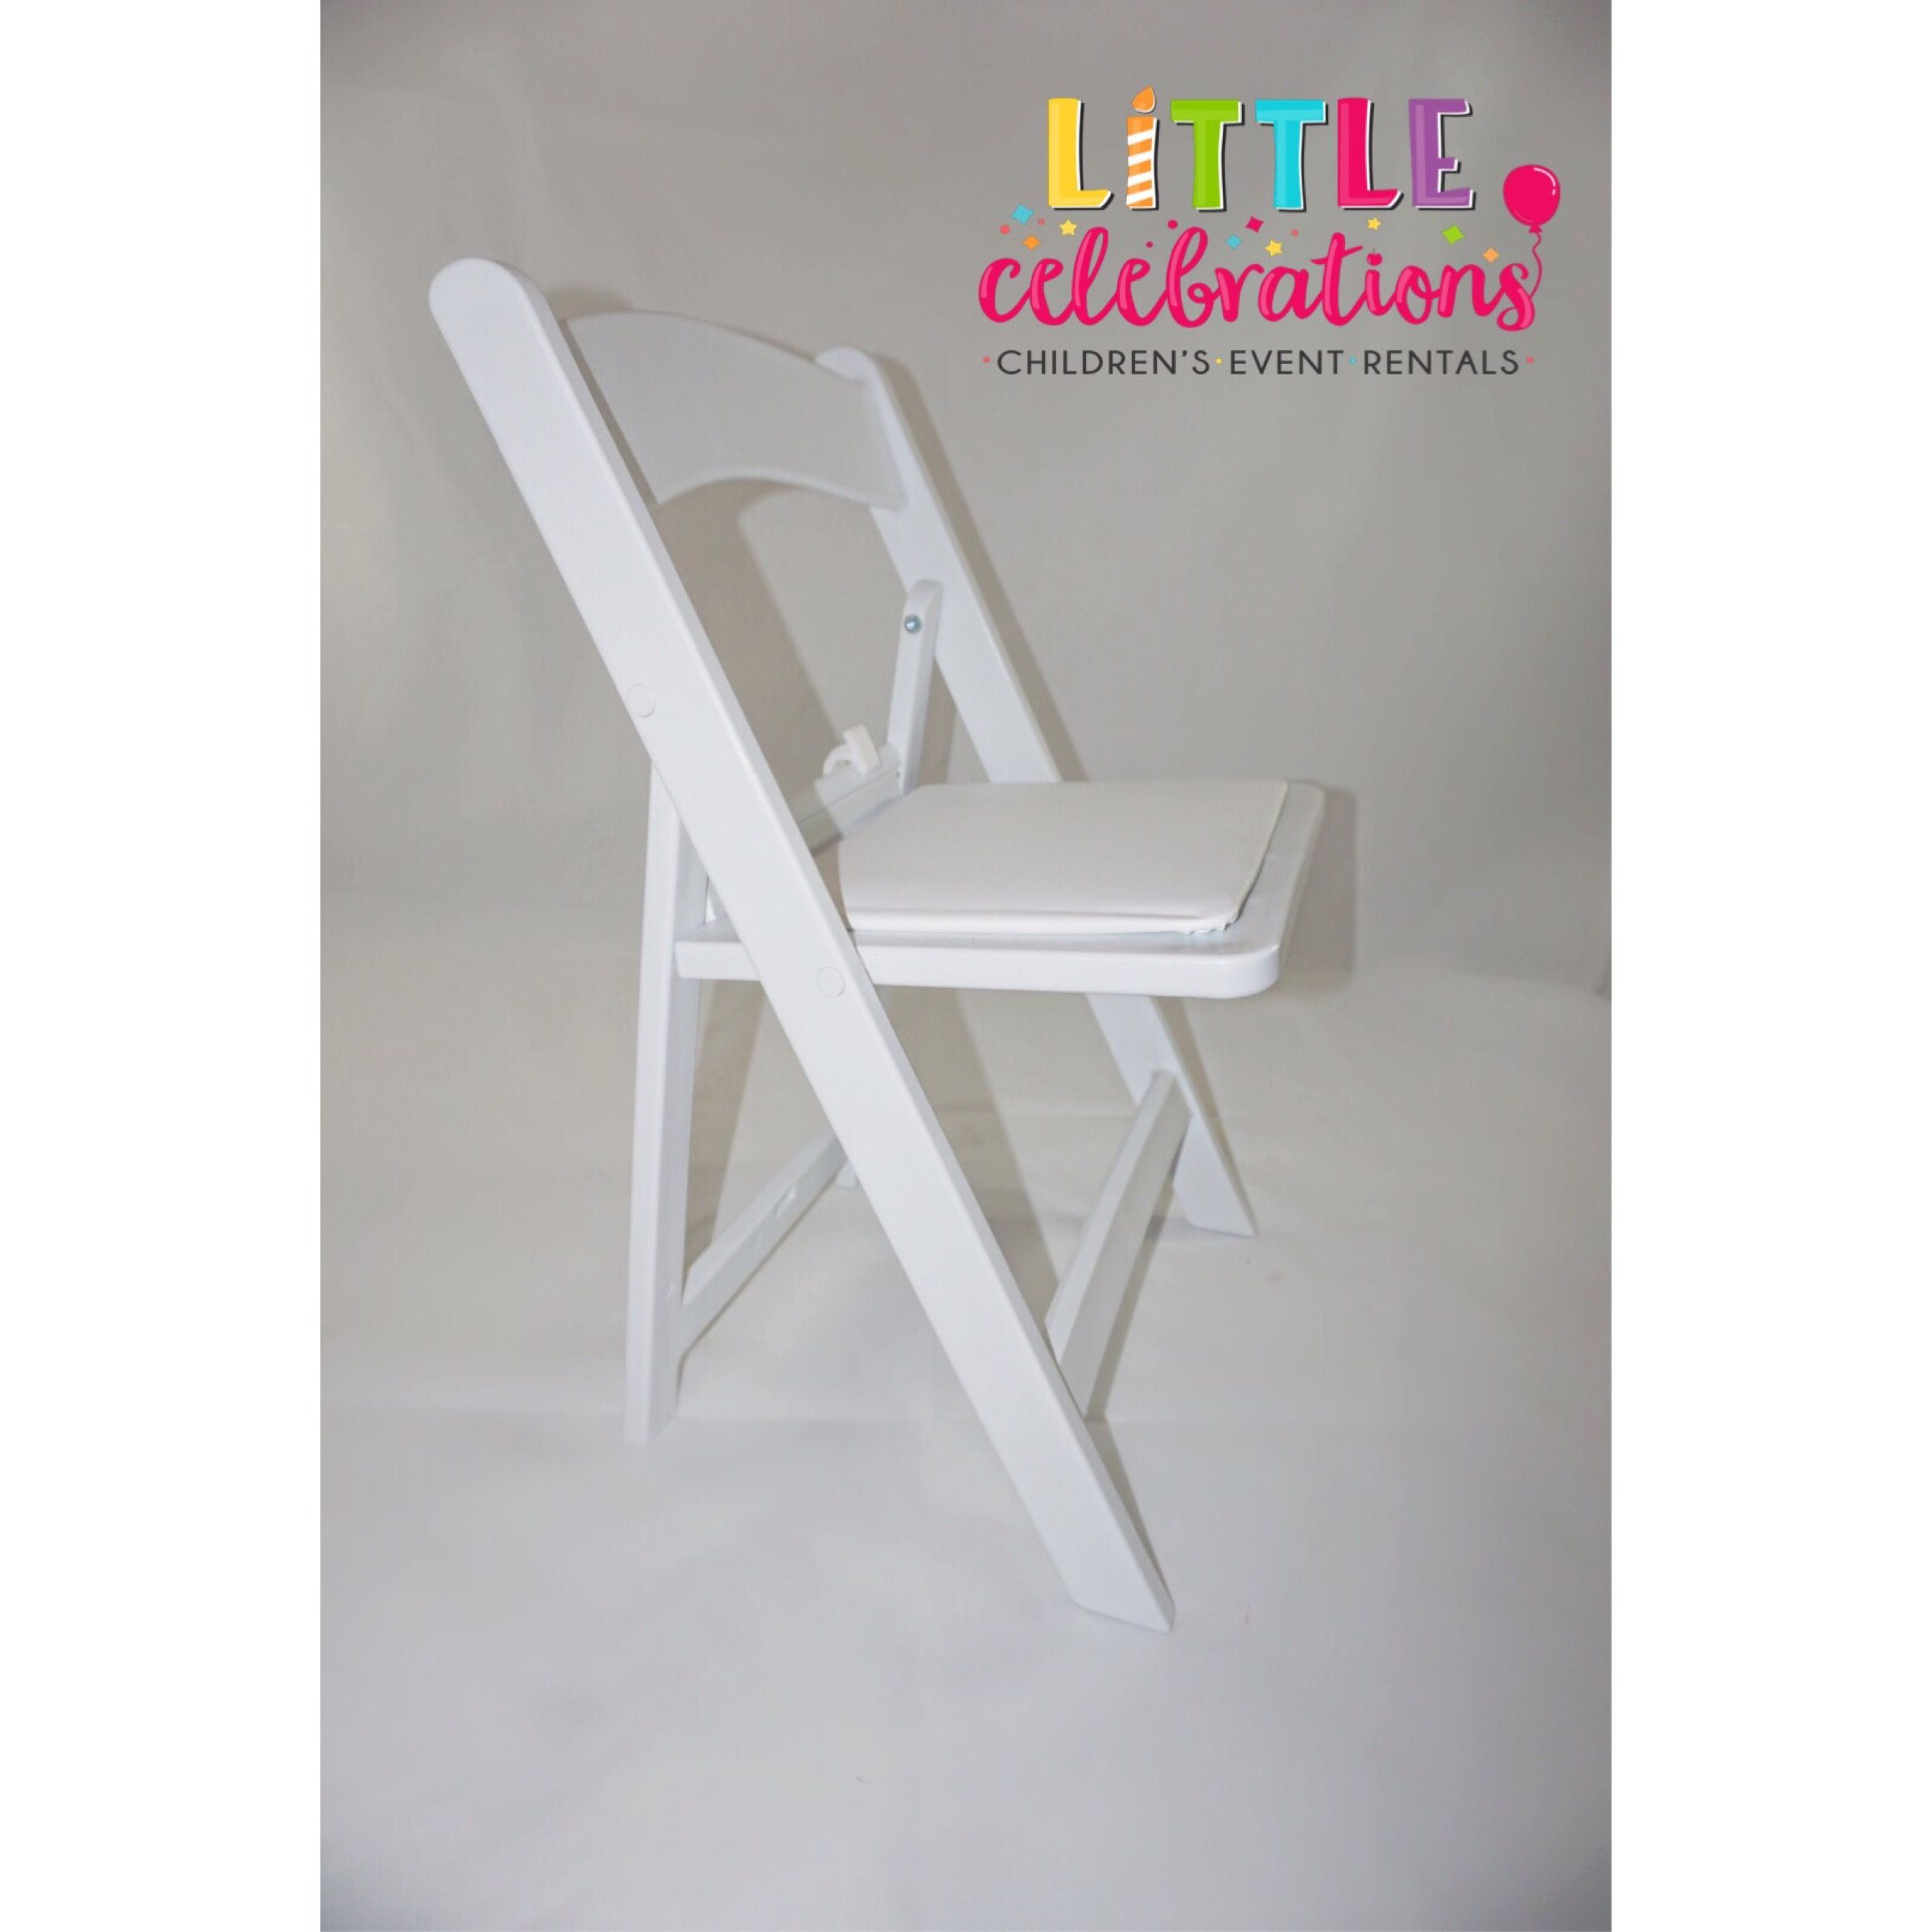 Children size white foldable chairs